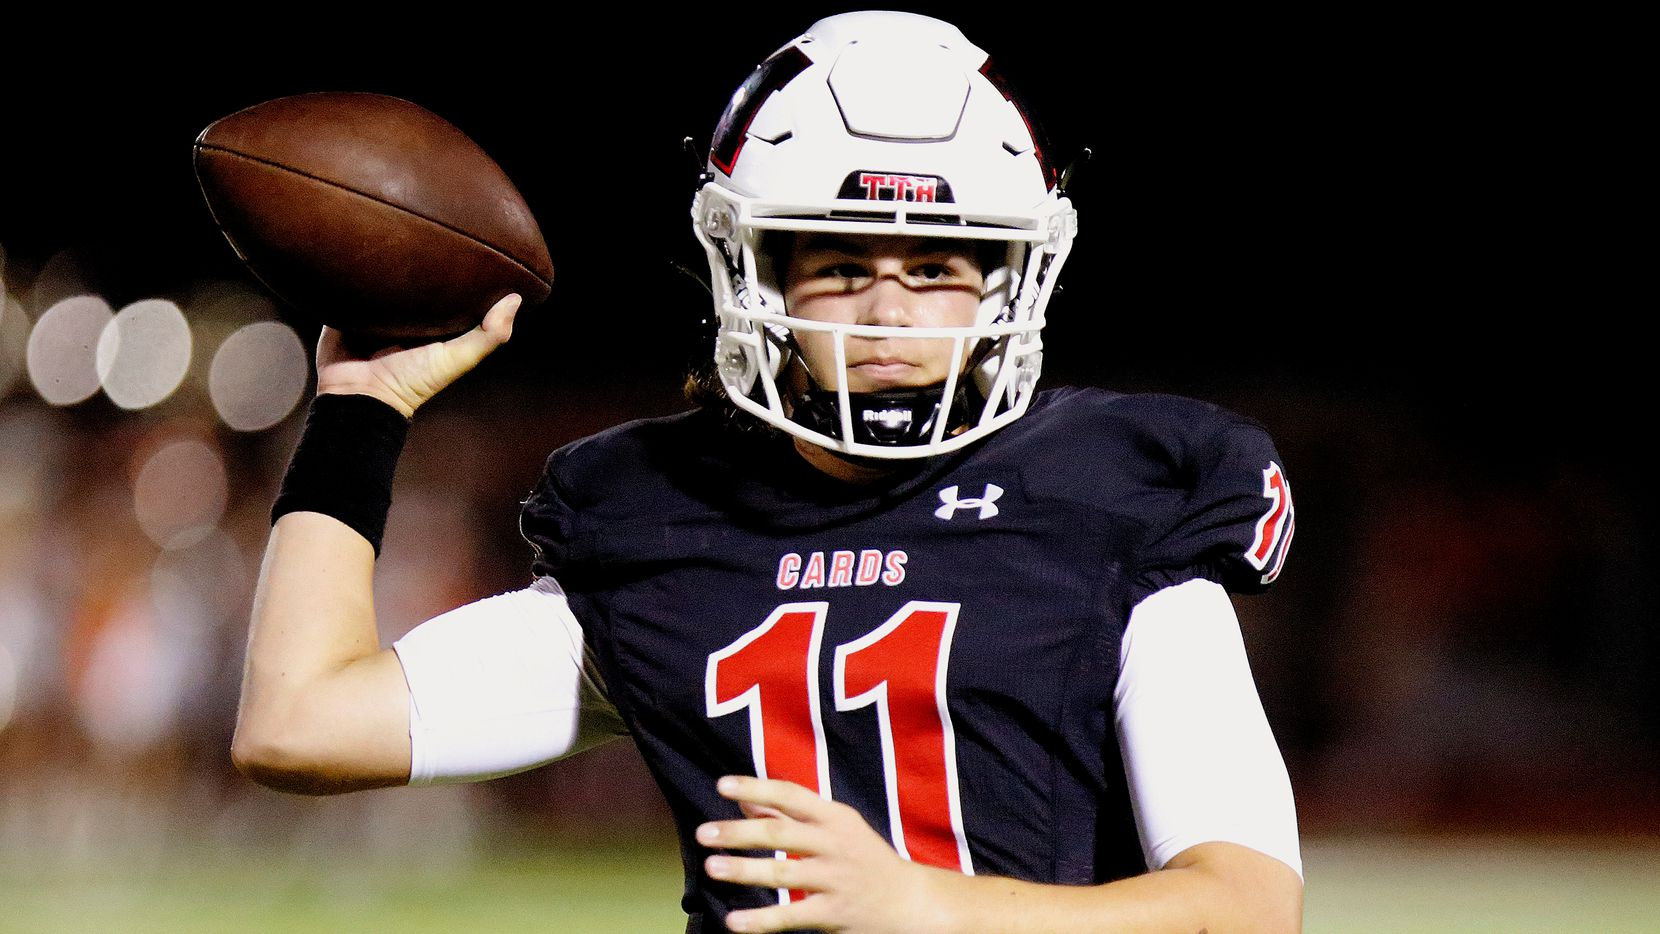 Melissa High School quarterback Sam Fennegan (11) throws a pass during the first half as Melissa High School hosted Celina High School at Cardinal Field in Melissa on Friday night, August 27, 2021. (Stewart F. House/Special Contributor)